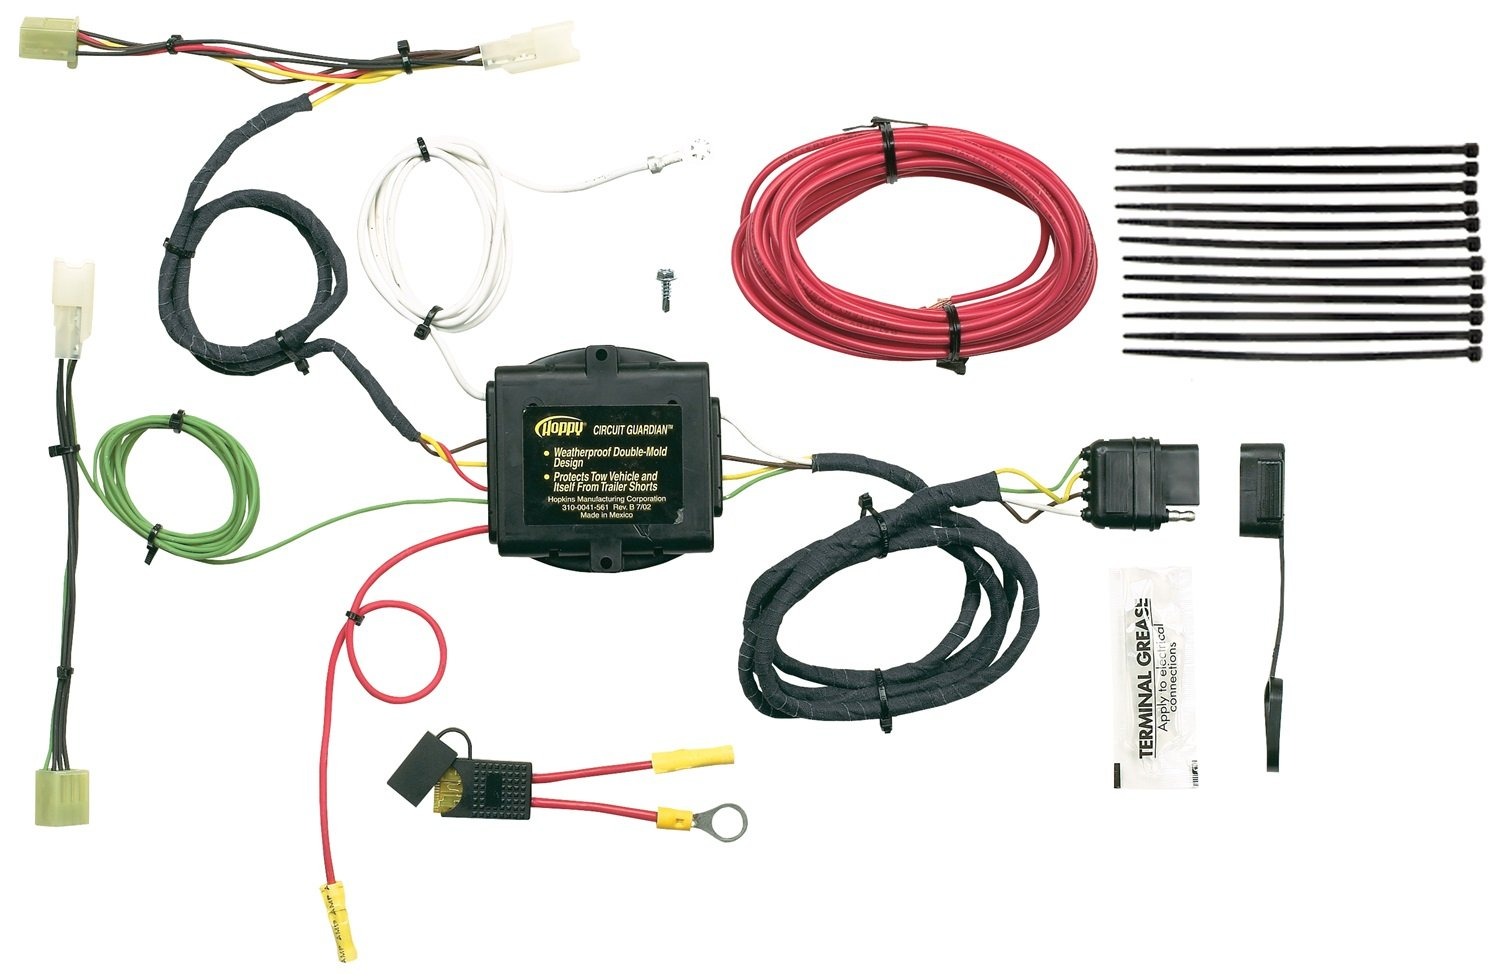 7191%2Bhe2xFL._SL1500_ amazon com hopkins 43425 plug in simple vehicle wiring kit  at edmiracle.co